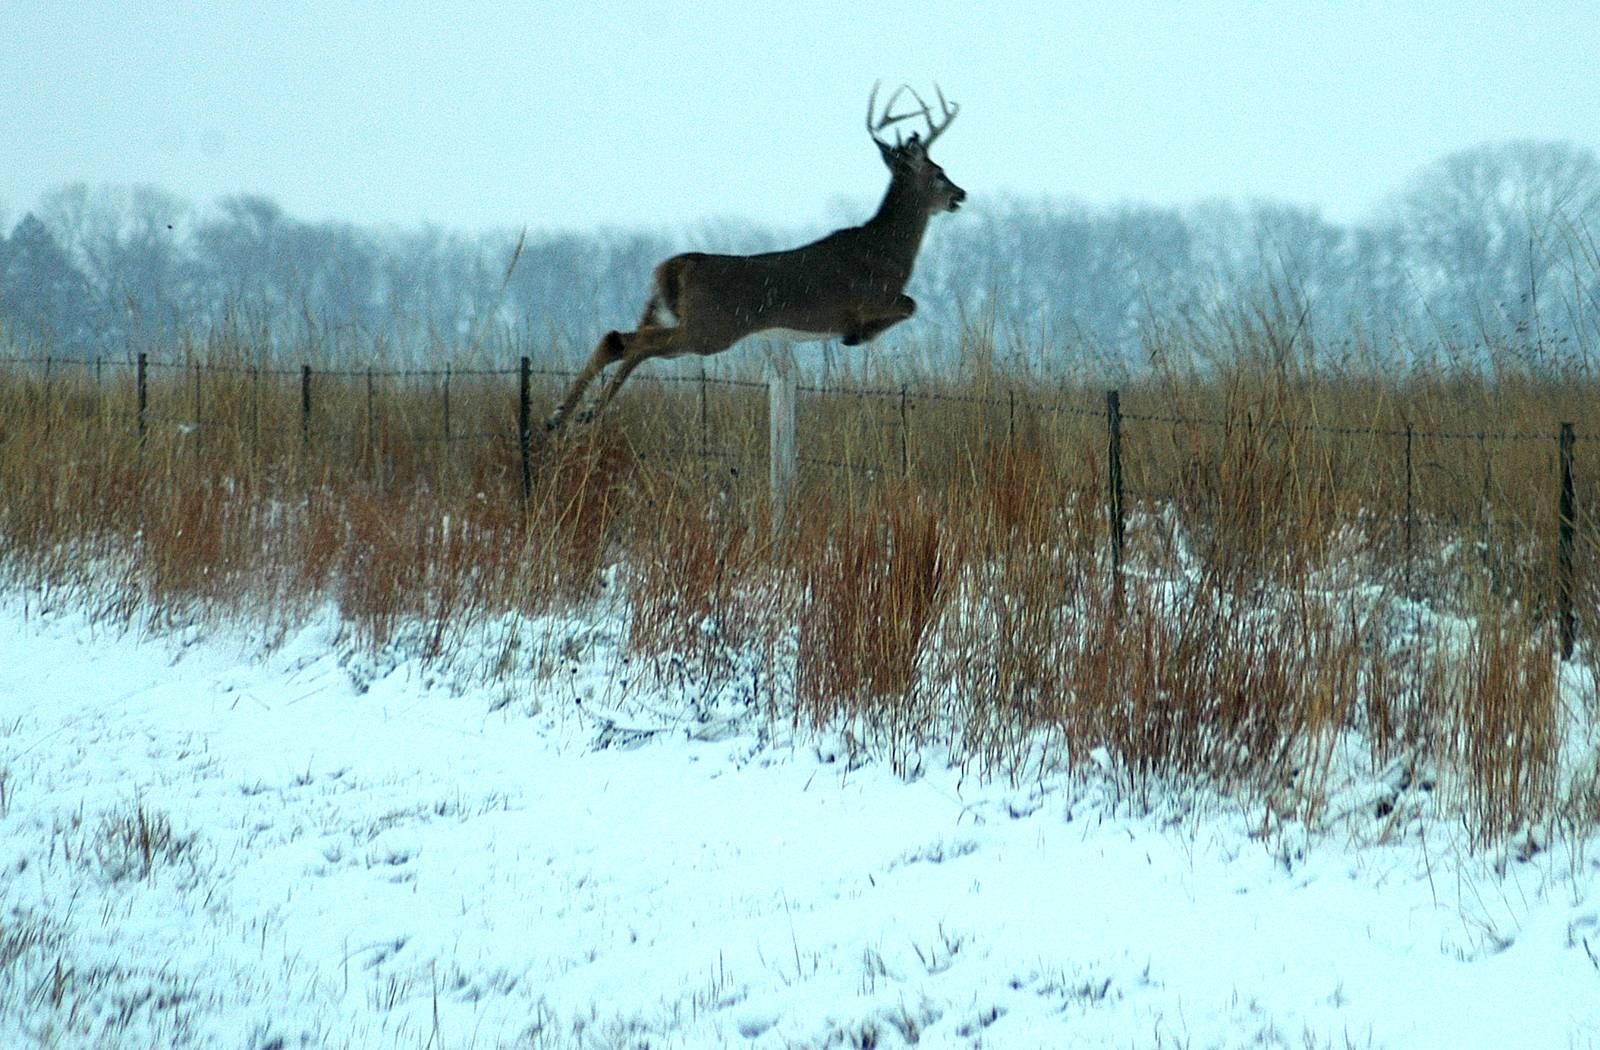 Whitetail Deer Wallpaper Whitetail Deer Backgrounds for PC HD 1600x1050